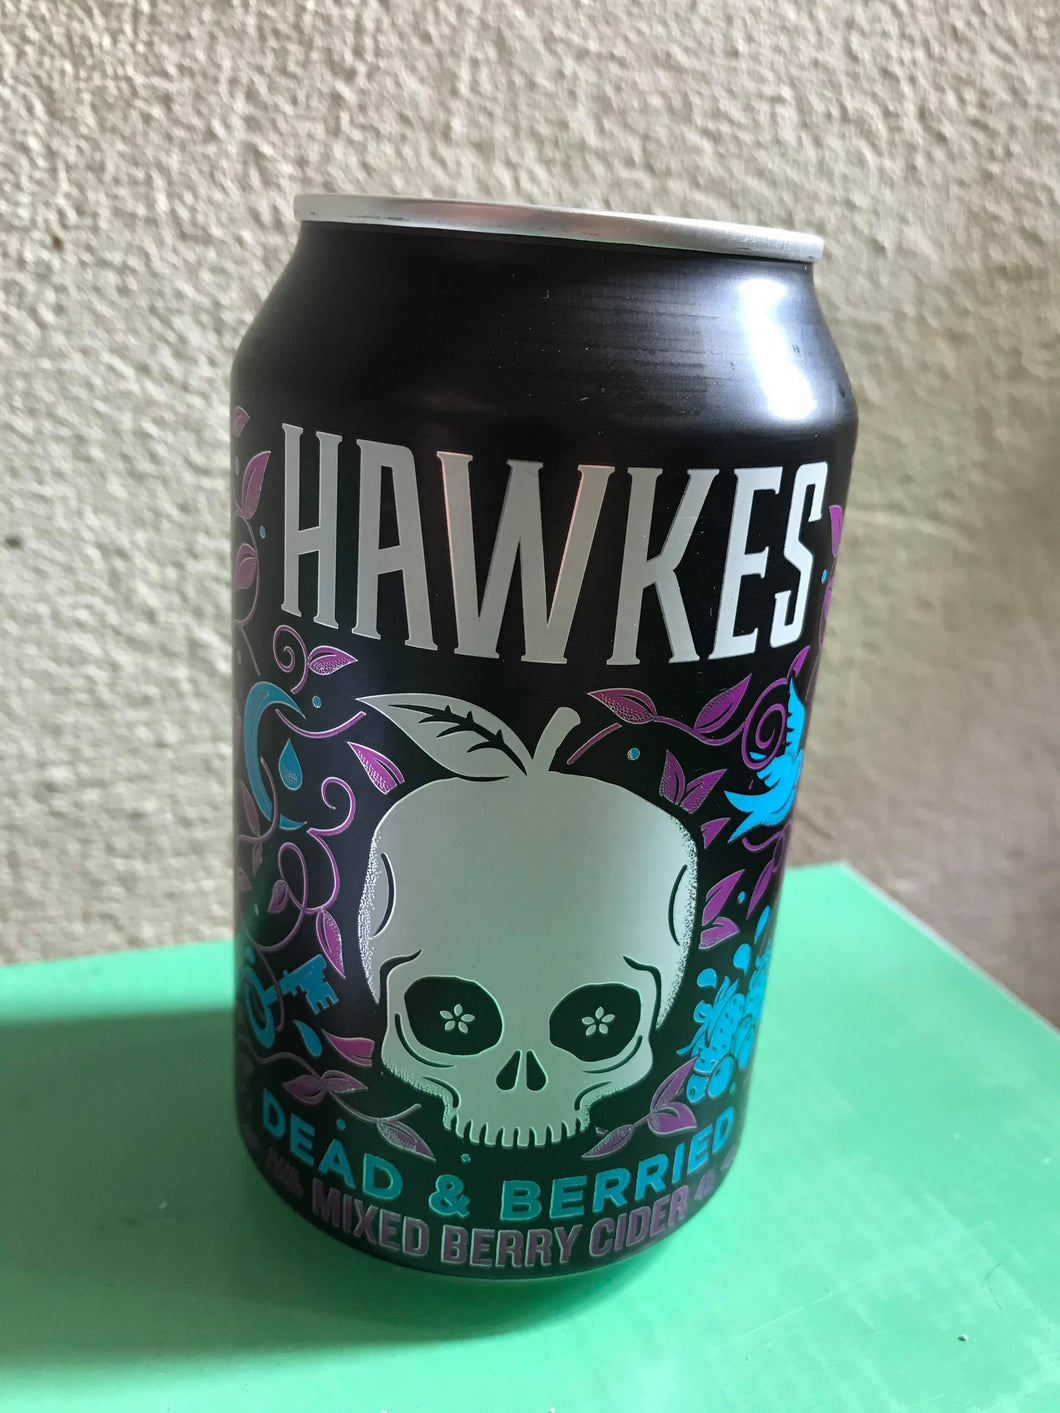 Hawked - Dead And Berried Mixed Berry Cider (330ml) 4.0%